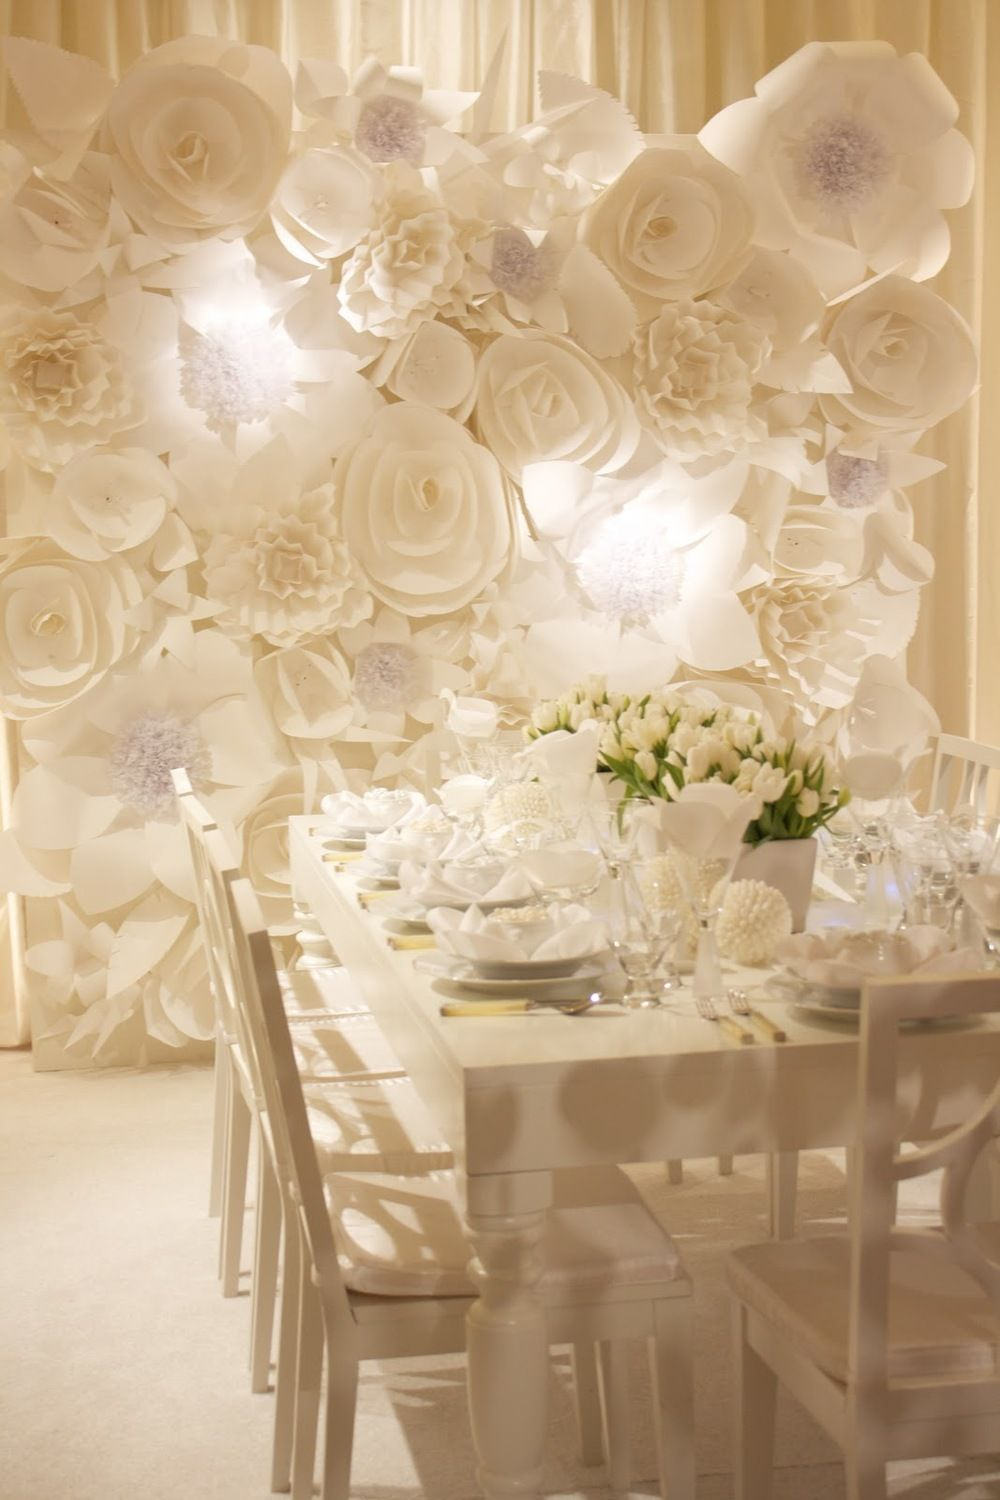 Best Wedding Wall Decorations At Receptions Pictures Inspiration ...